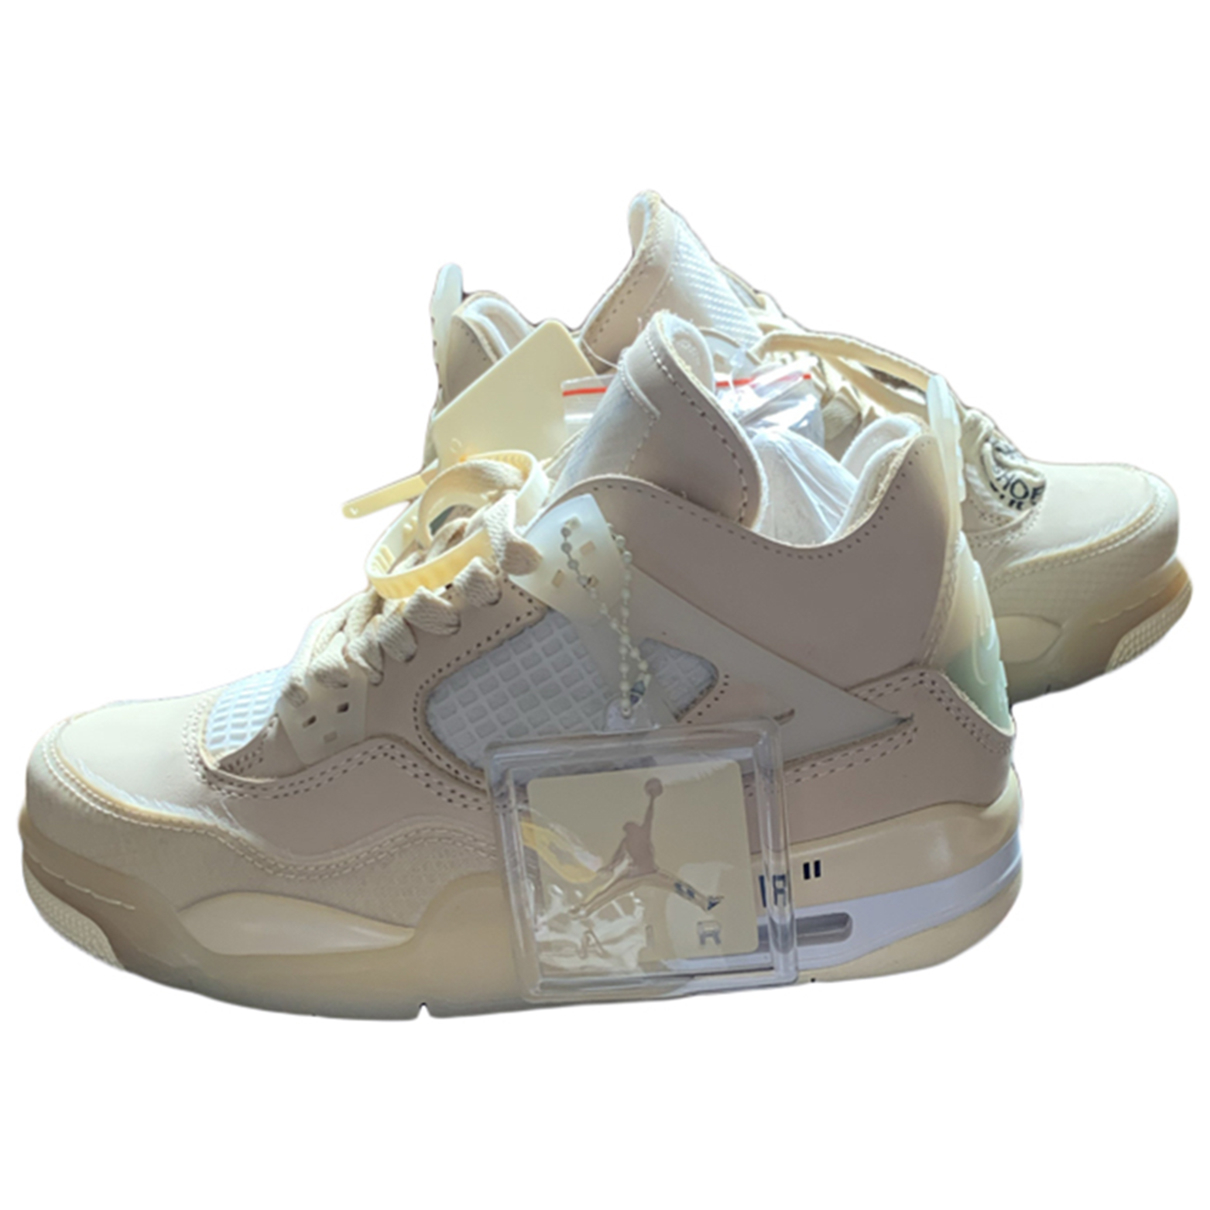 Nike X Off-white Air Jordan 4 Beige Suede Trainers for Women 3.5 UK